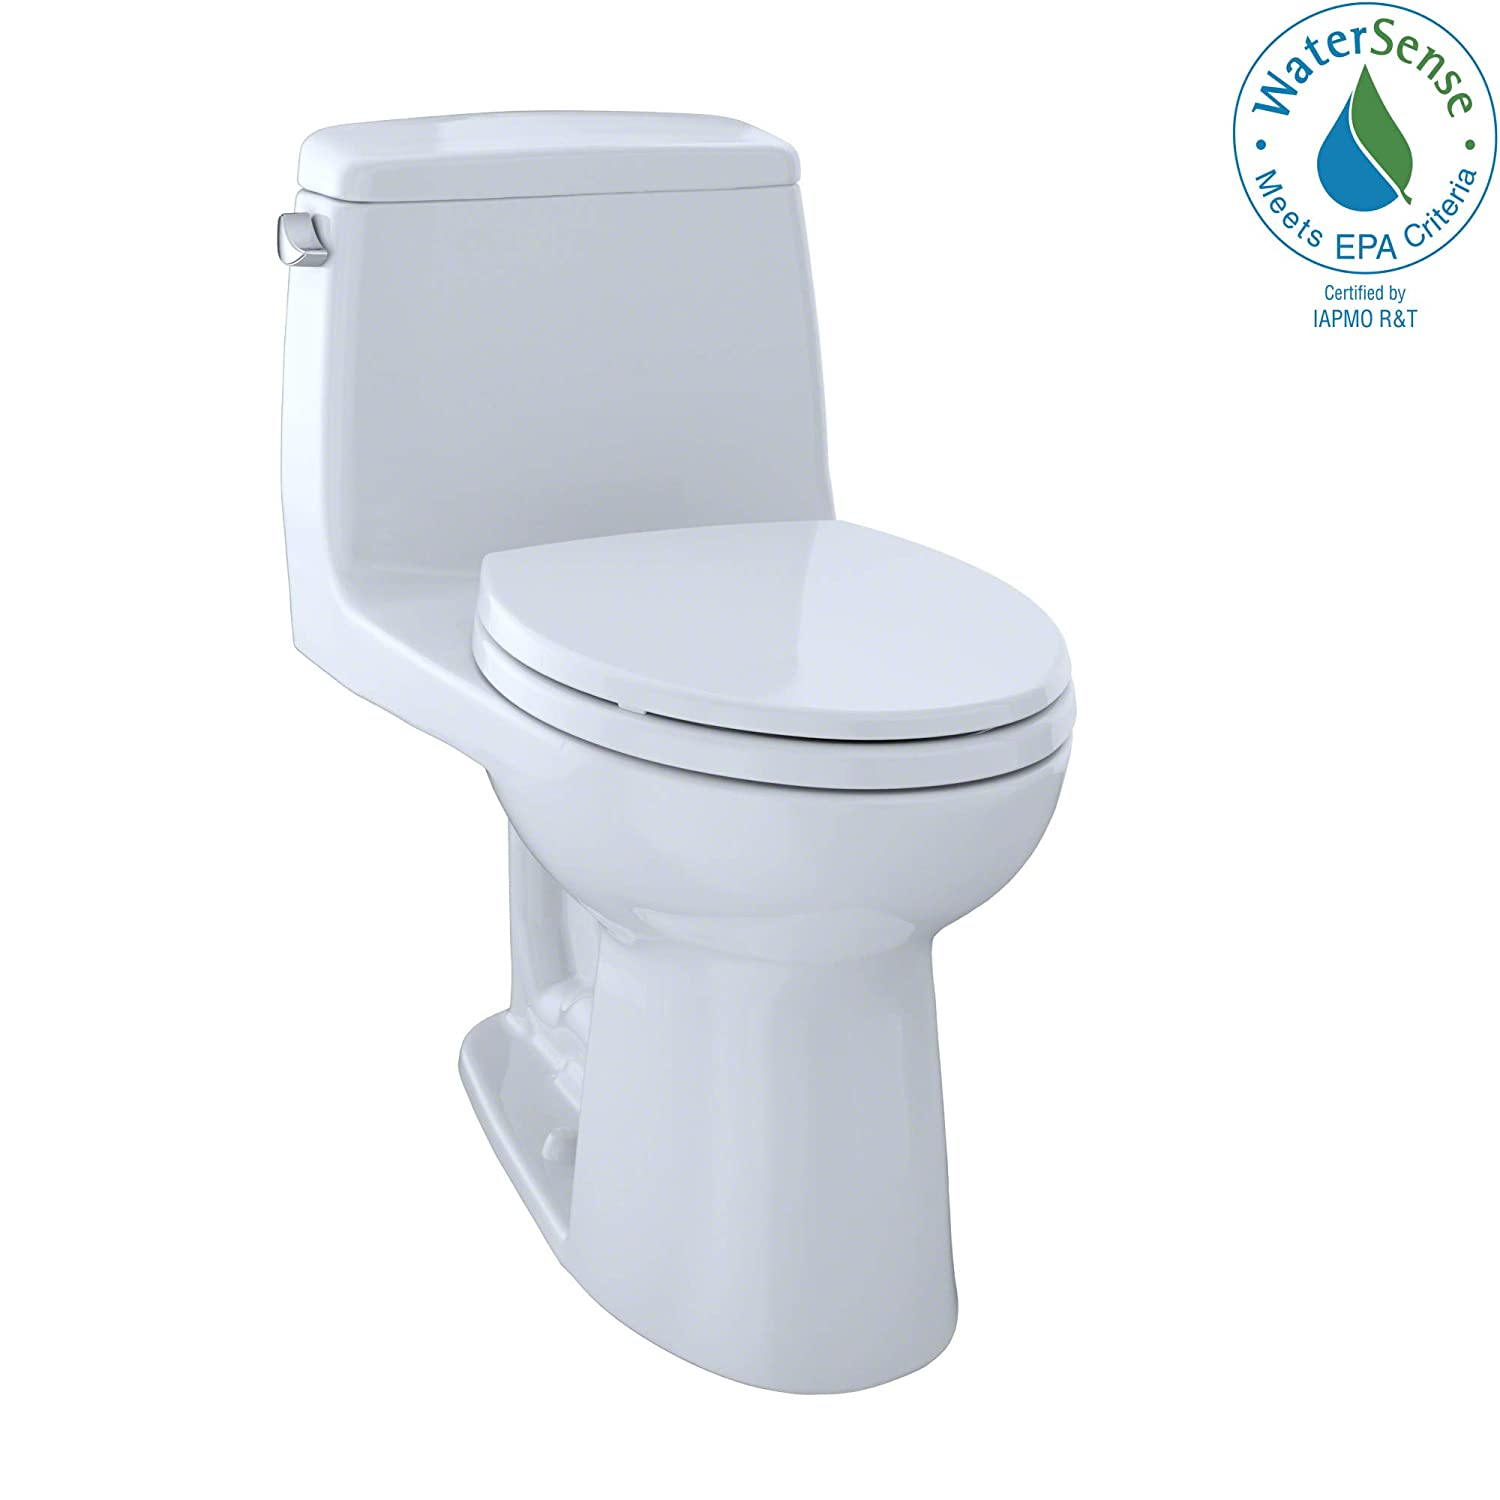 TOTO MS854114EG#01 Eco Ultramax Elongated One Piece Toilet with Sanagloss, Cotton White